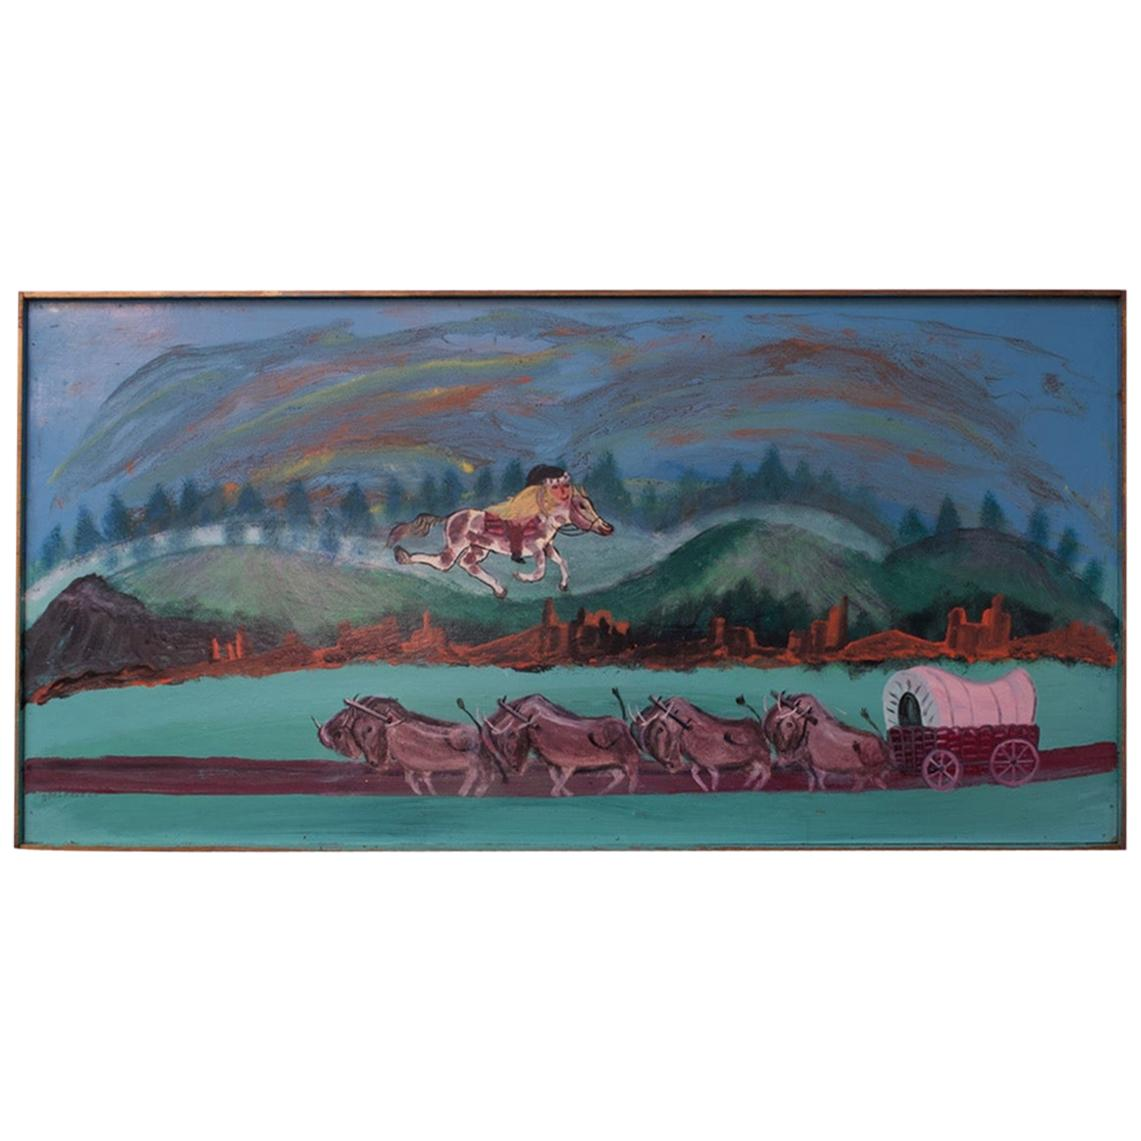 """Outsider Art """"Indian and Caravan"""" Oil on Panel by Bruno Del Favero"""